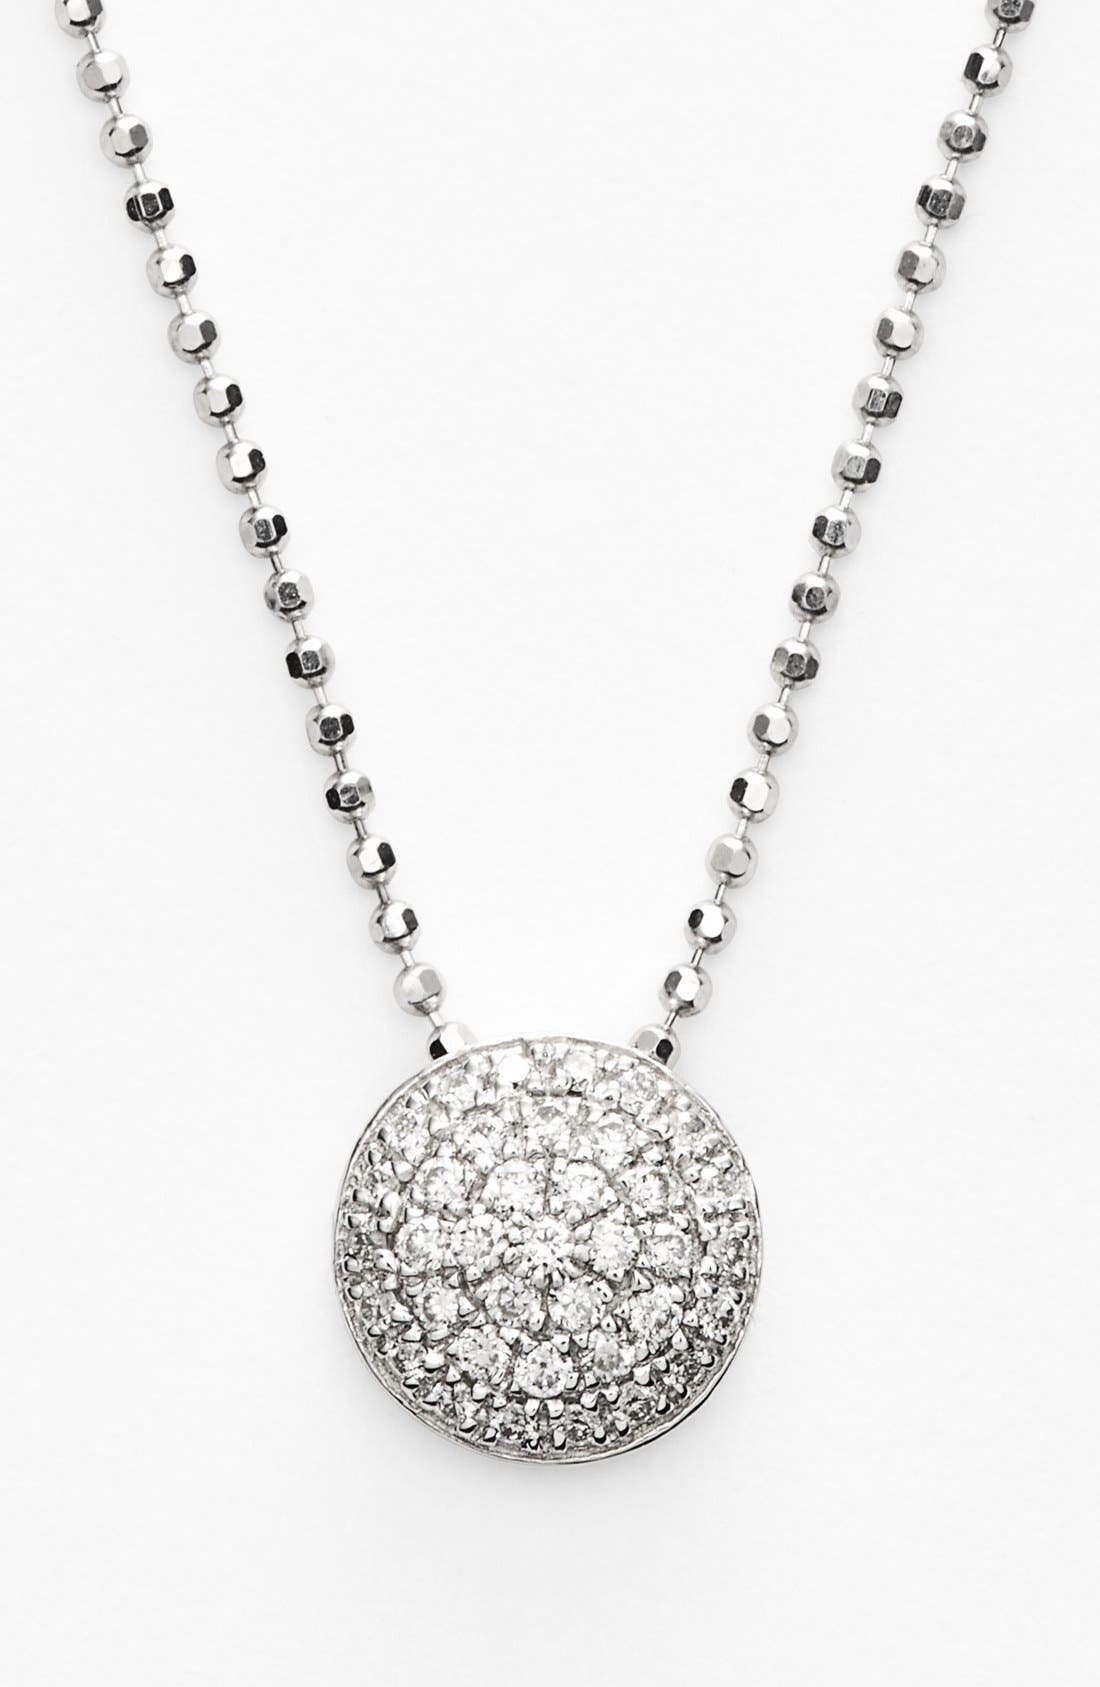 BONY LEVY 'Eclipse' Pavé Diamond Pendant Necklace